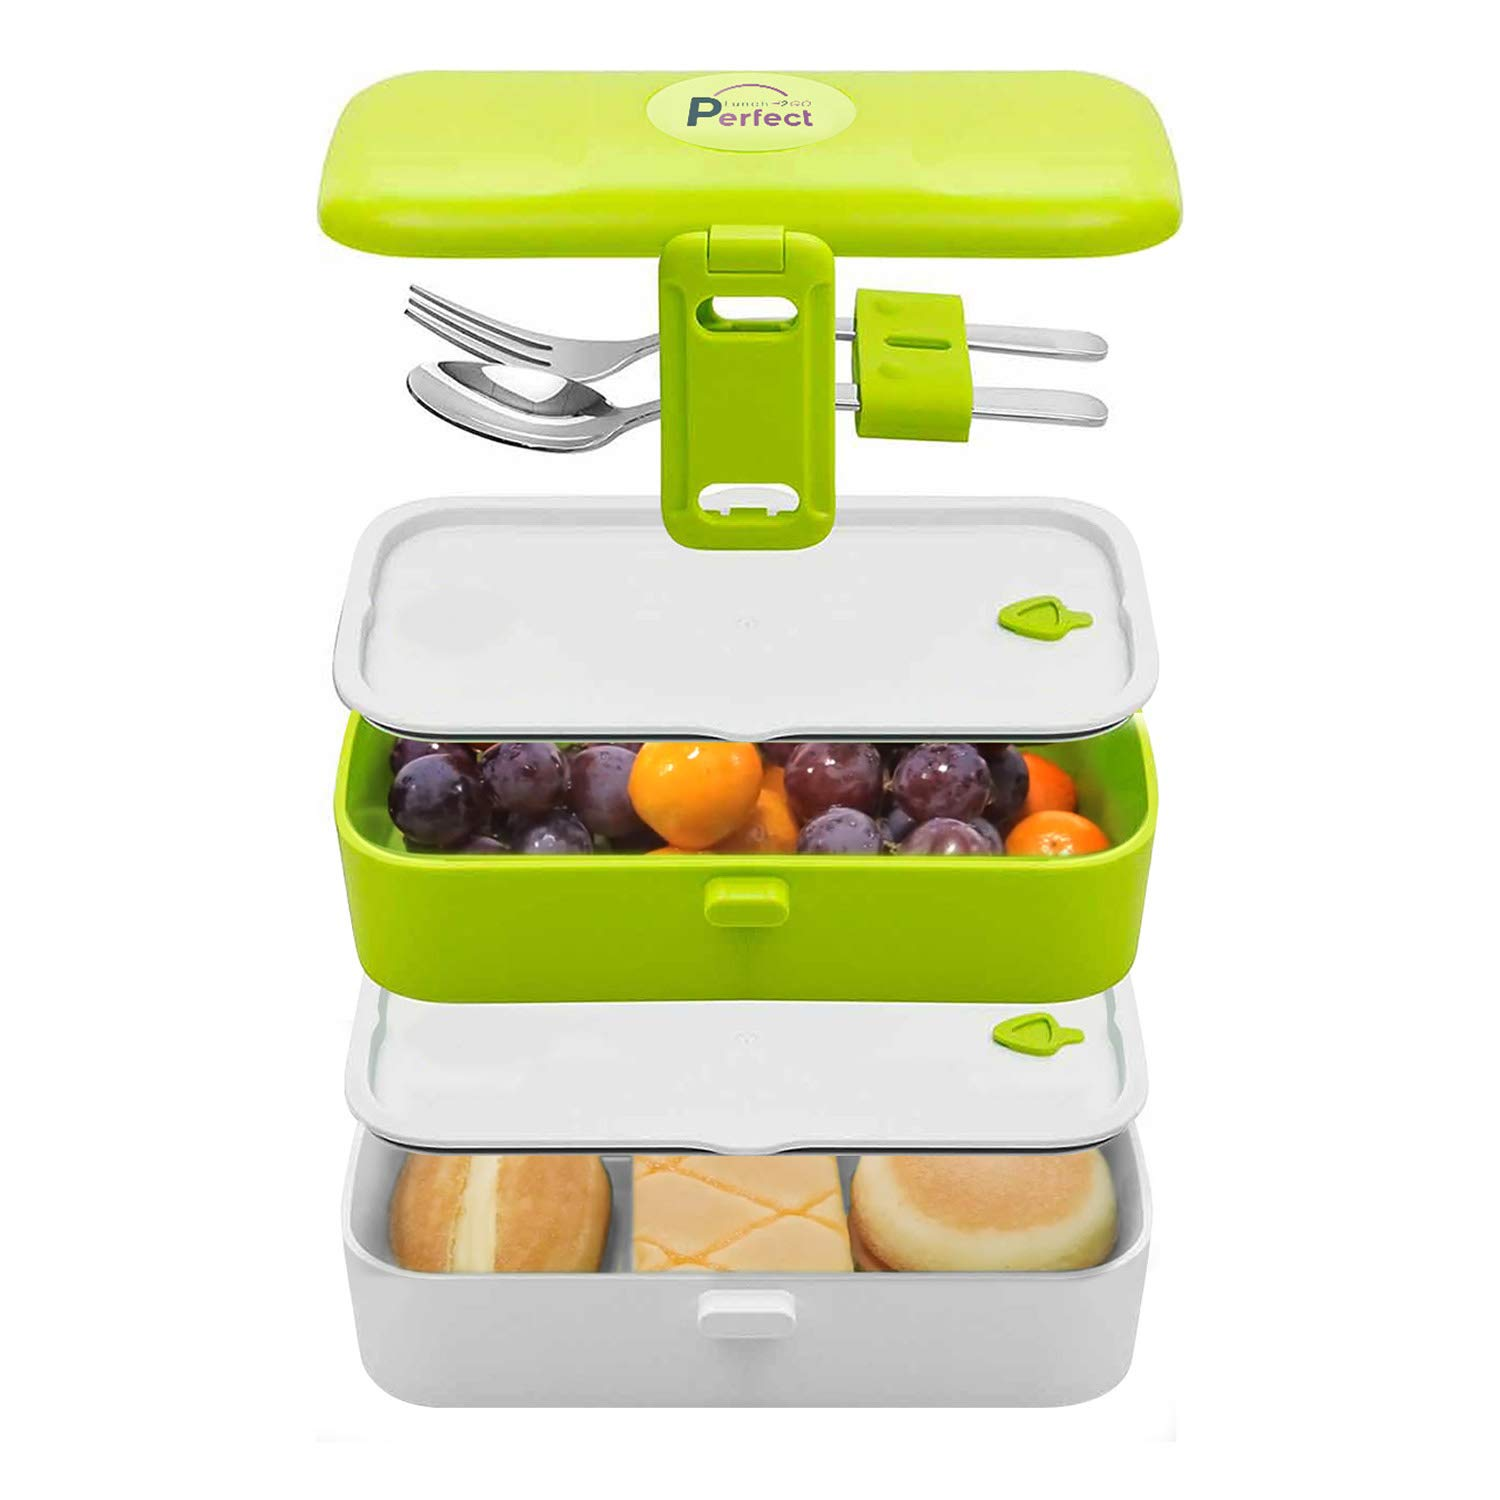 An easy to clean meal containter with multiple layers.